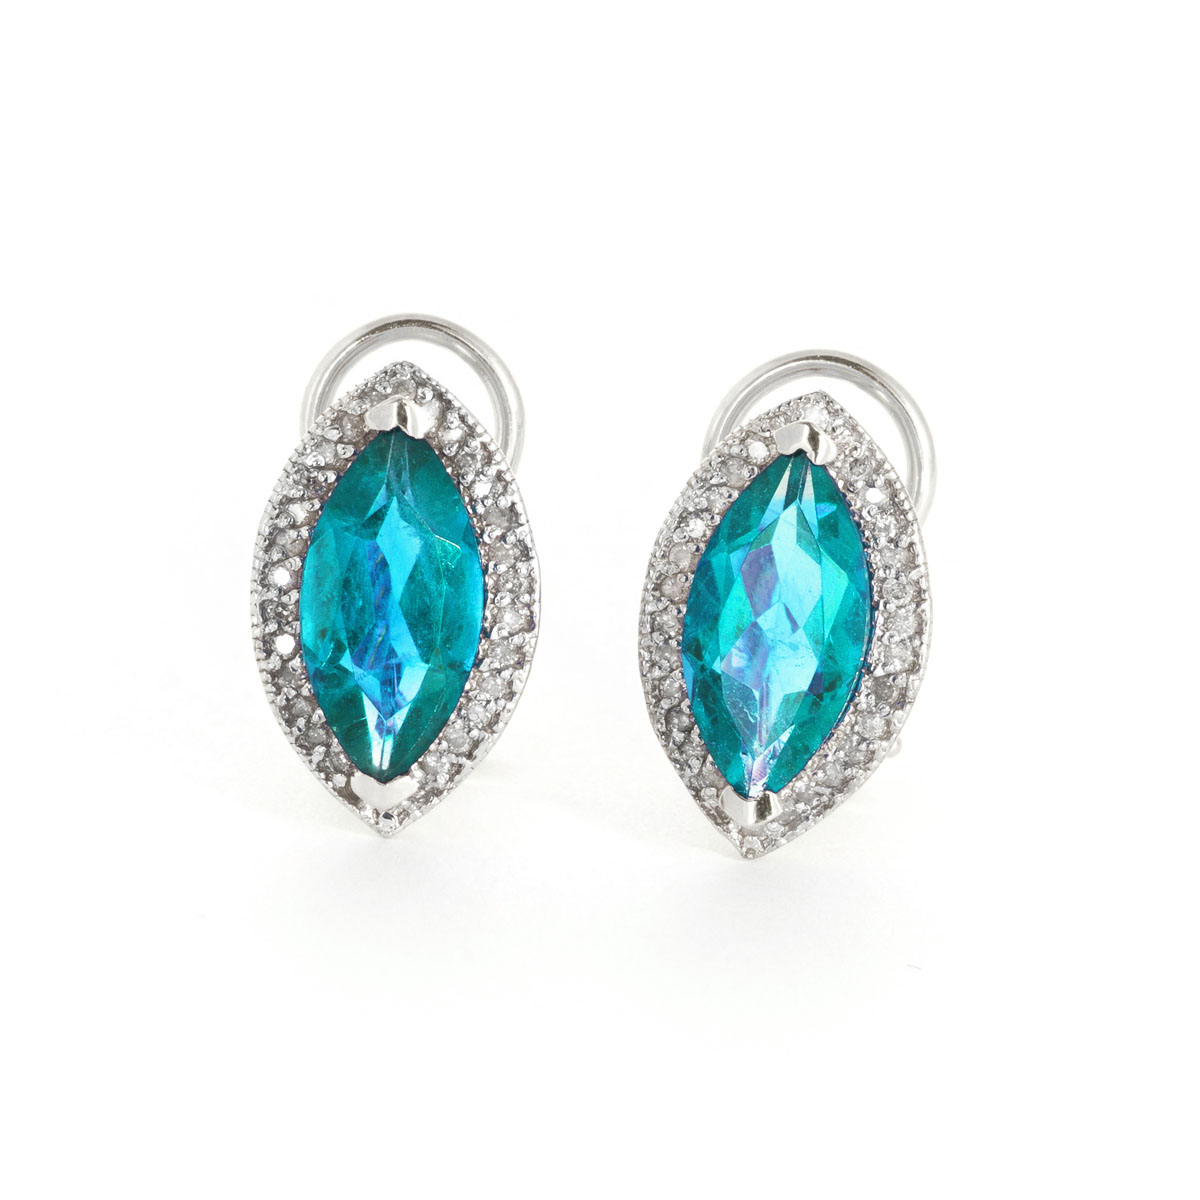 Blue Topaz French Clip Halo Earrings 4.8 ctw in 9ct White Gold